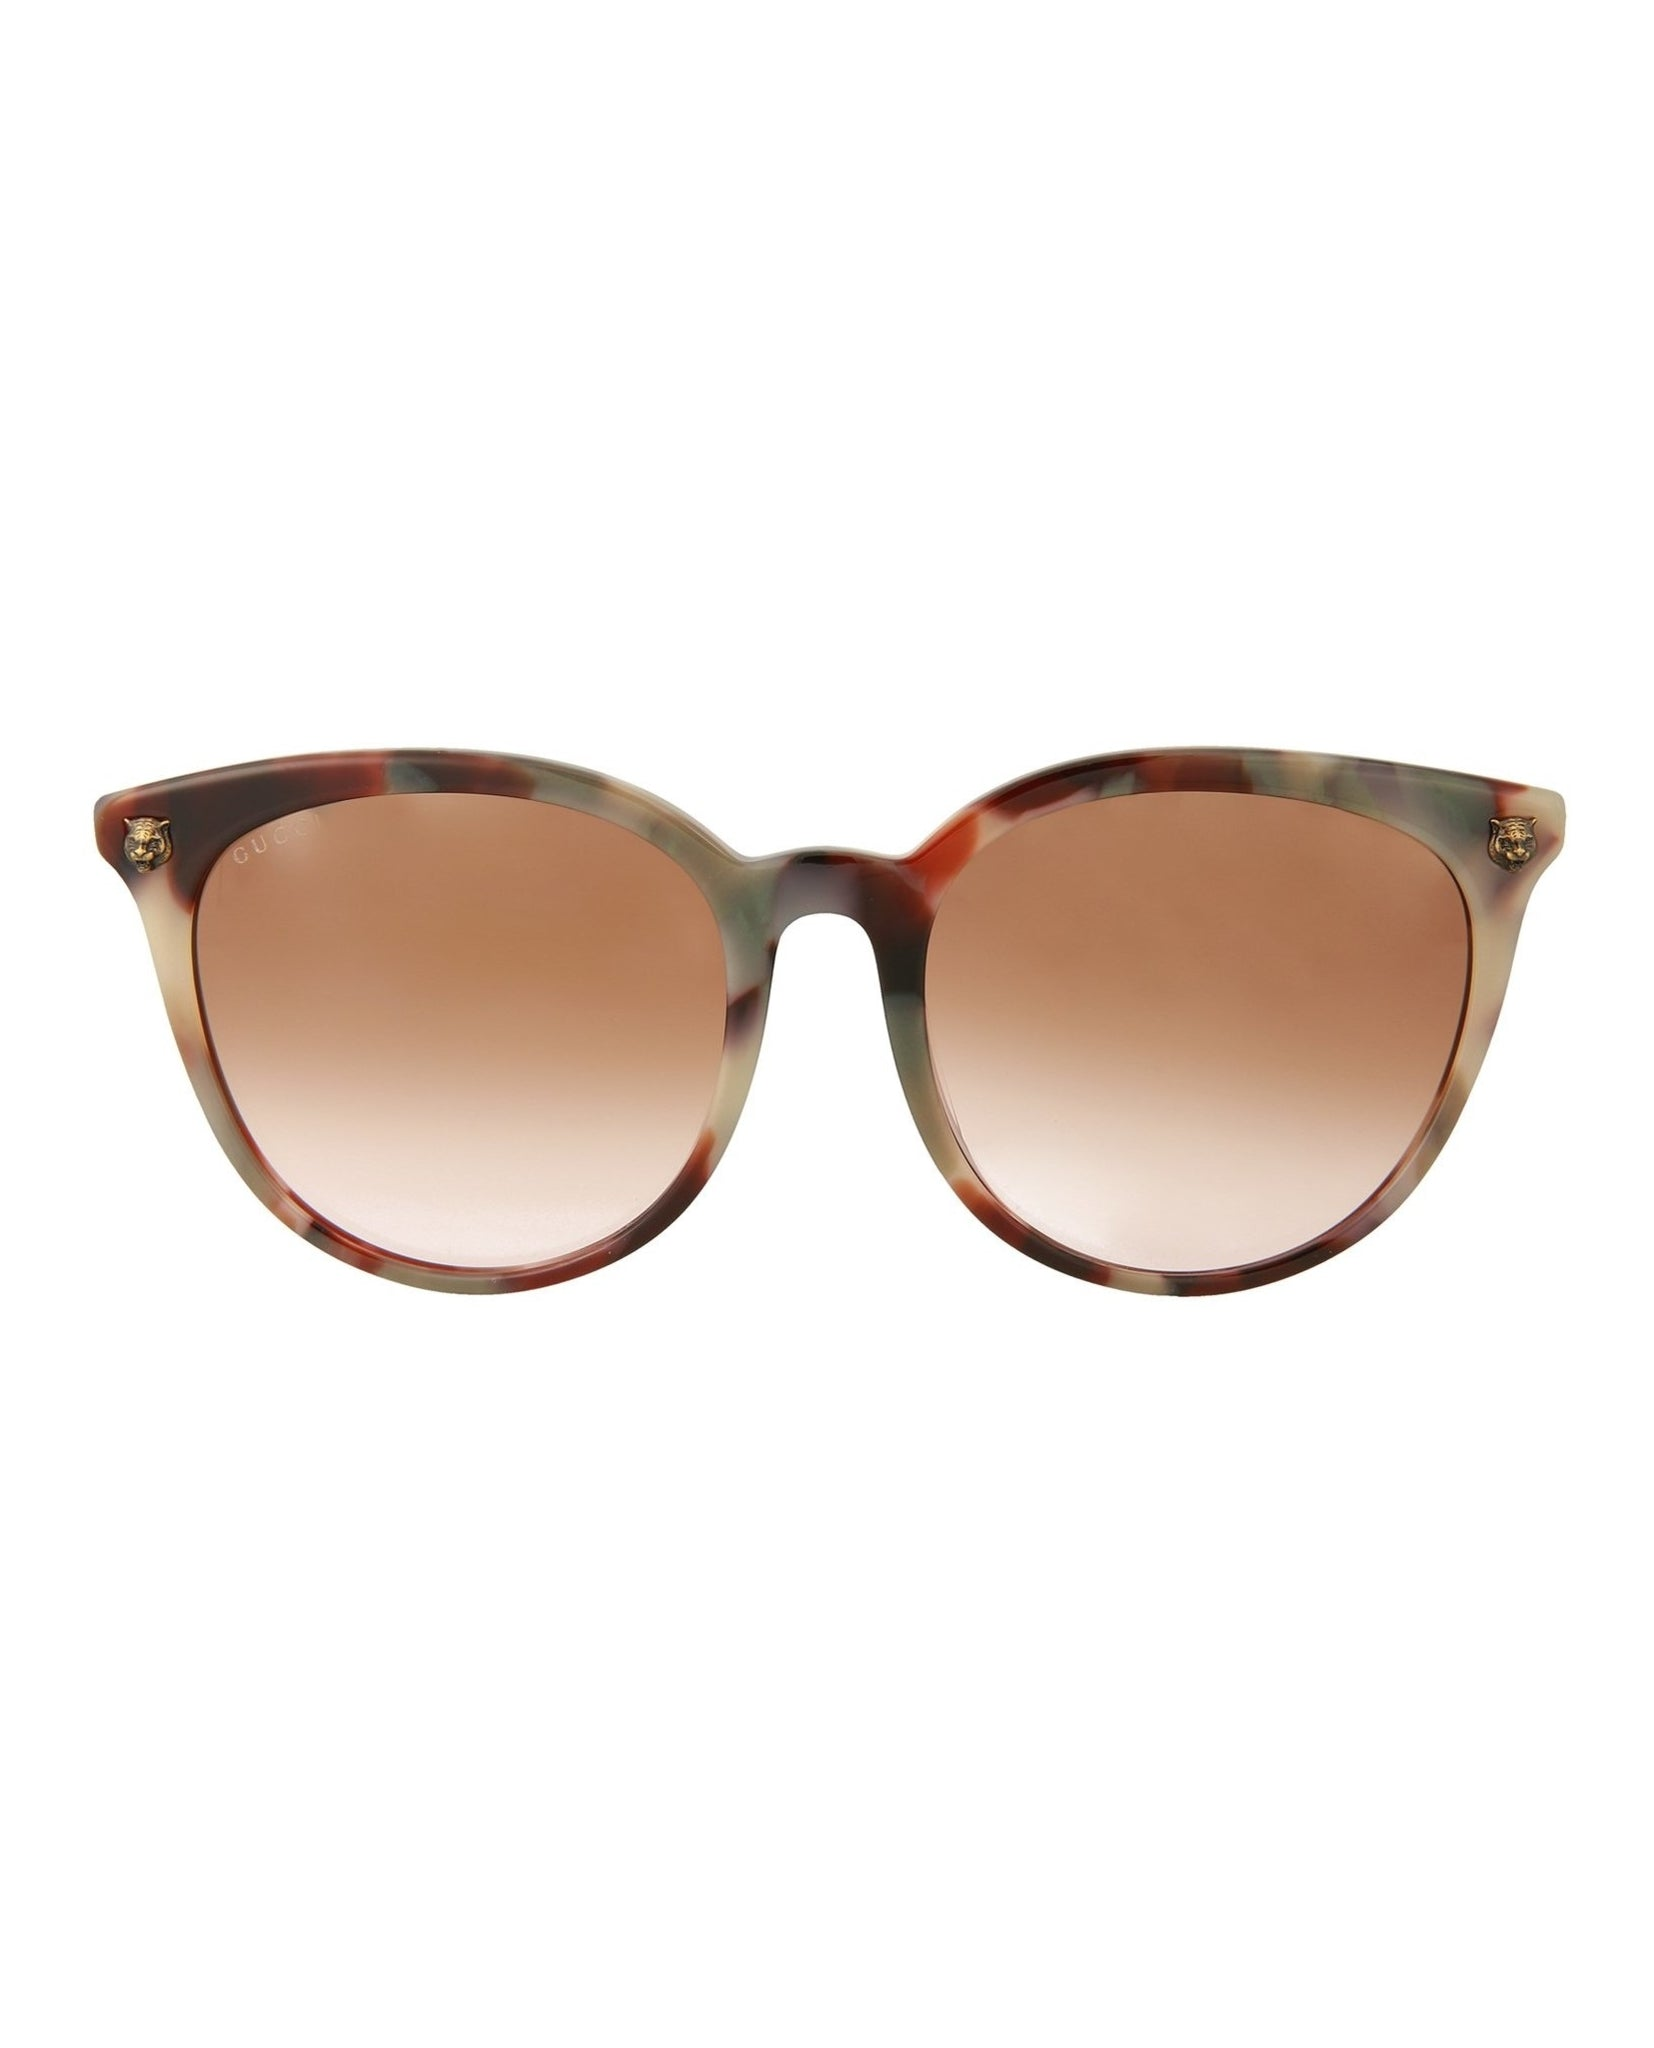 418e188891 Gucci Womens Round Oval Sunglasses